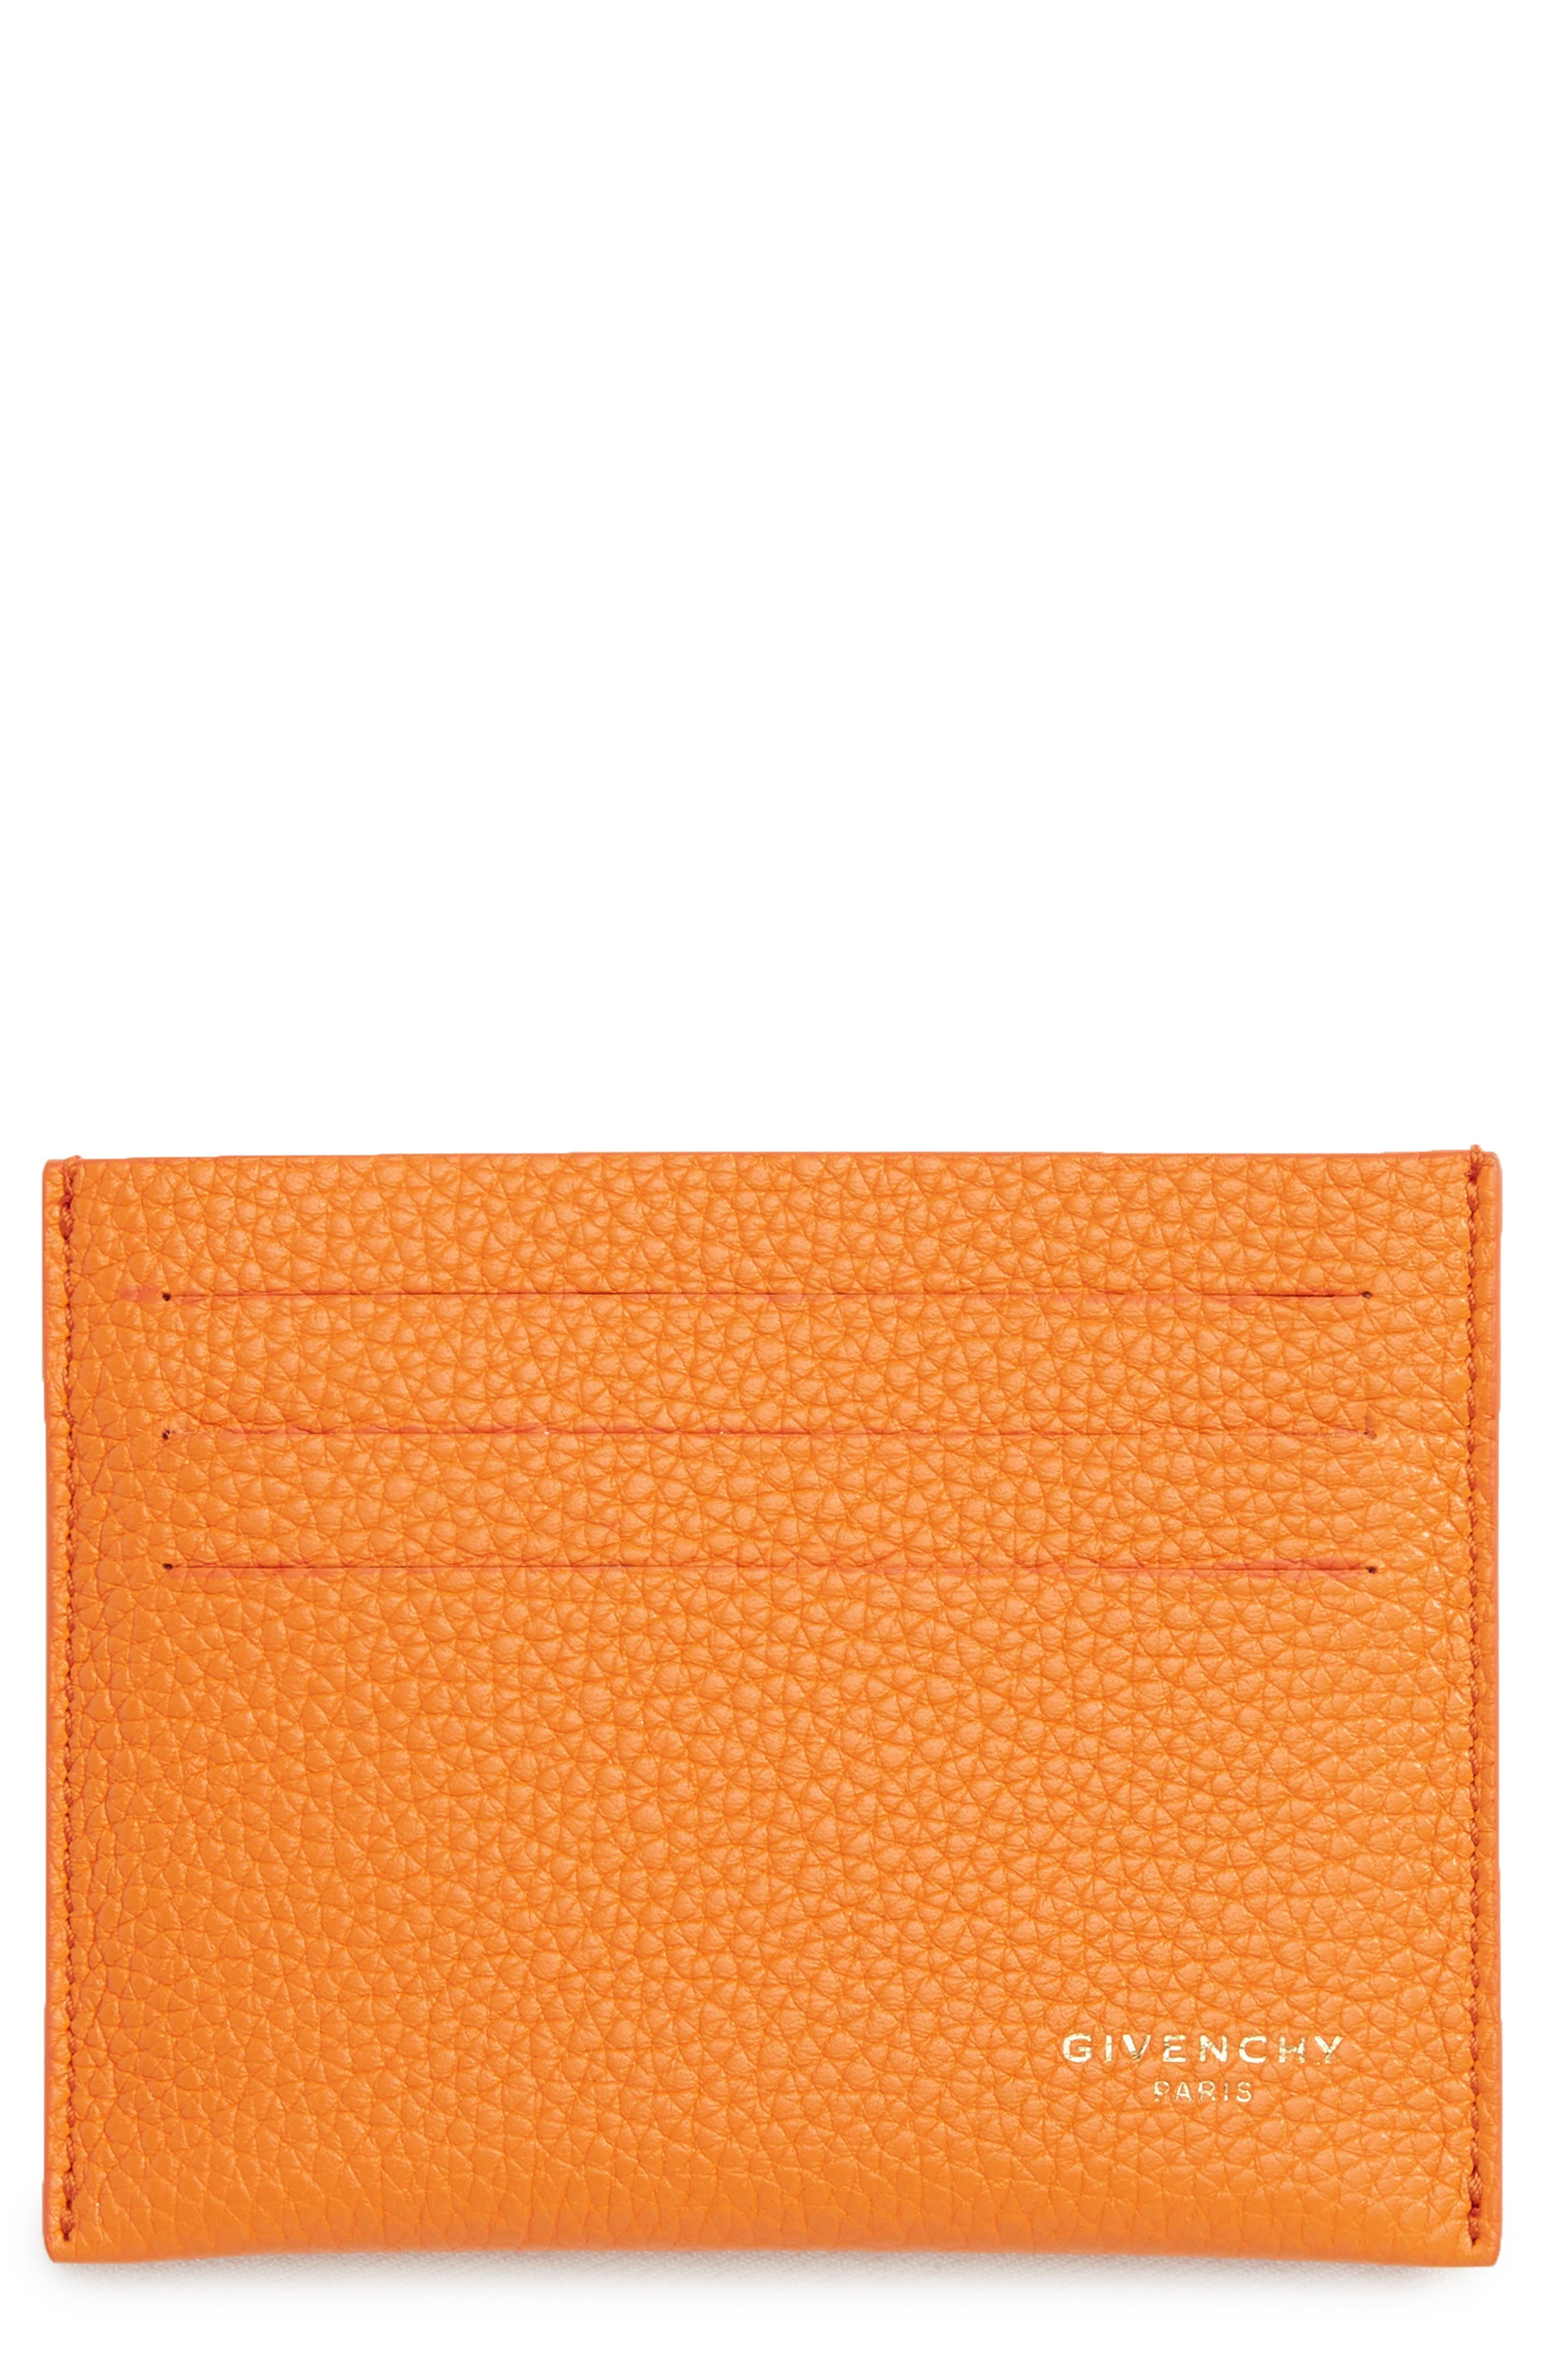 Main Image - Givenchy Leather Card Case